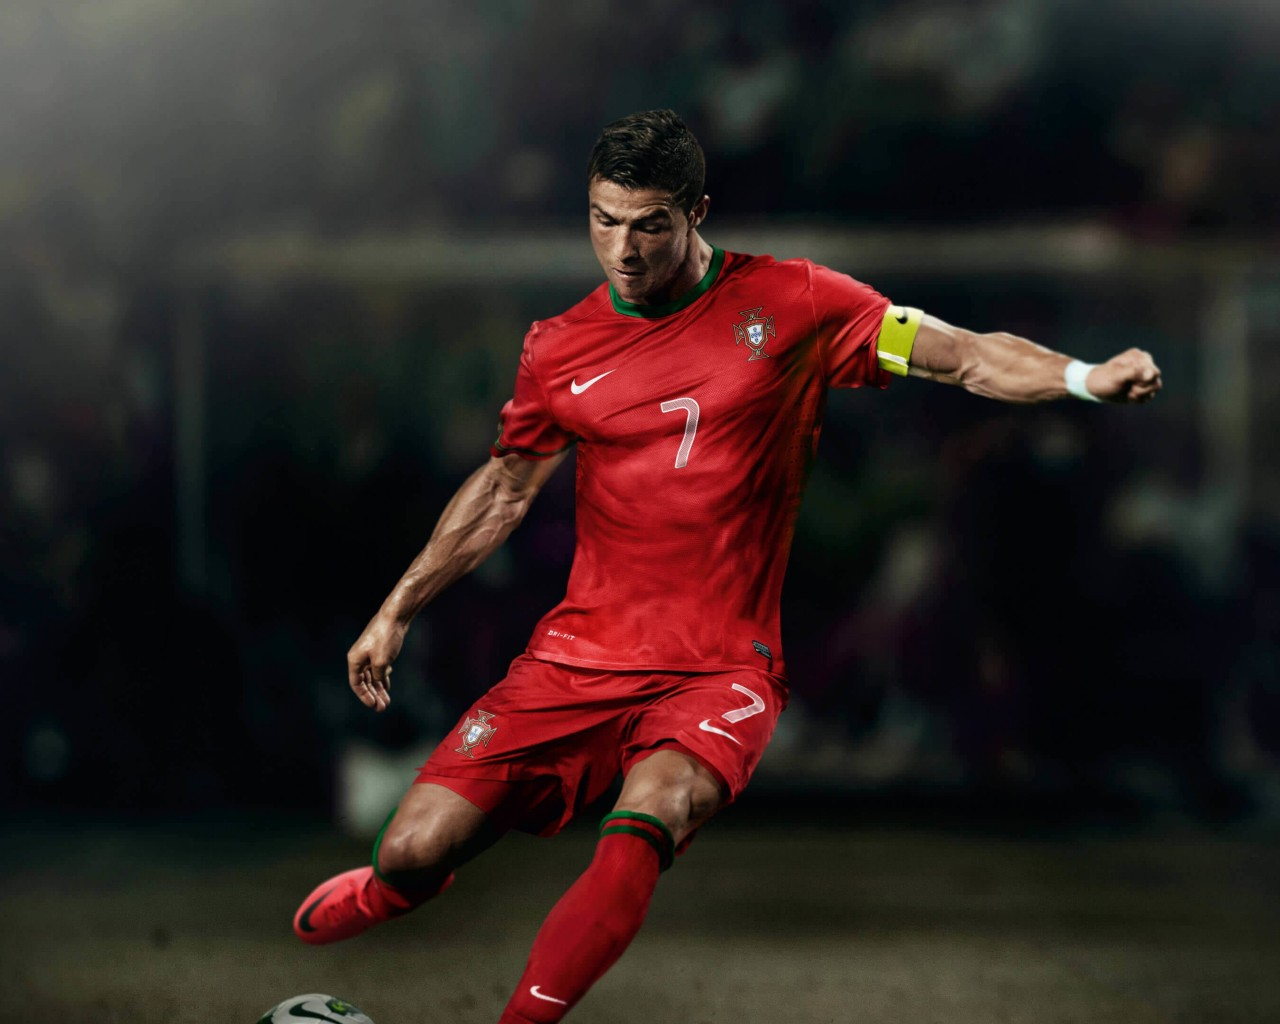 Cristiano Ronaldo In Portugal Jersey Wallpaper for Desktop 1280x1024